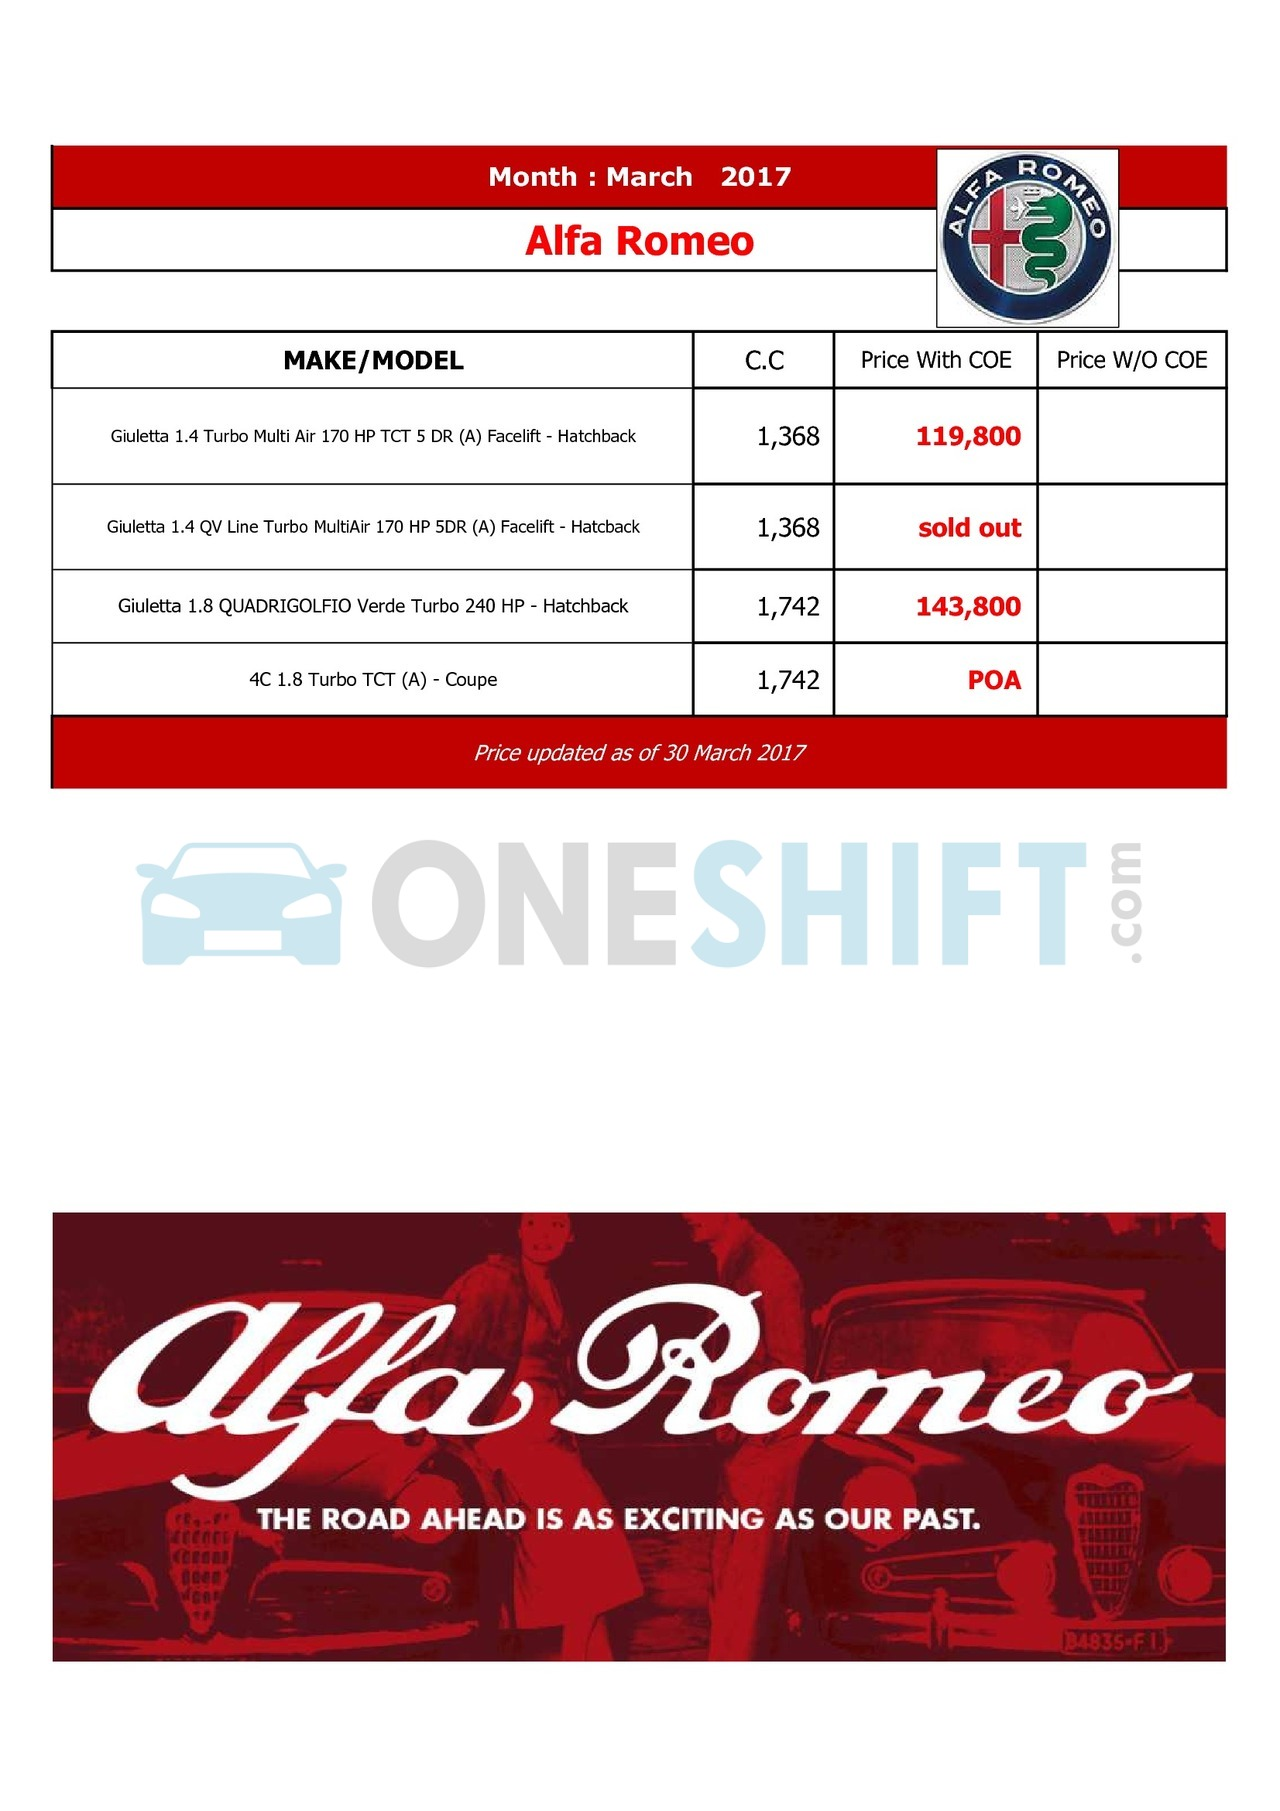 alfa-romeo Price List 3-31-2017 Page 1